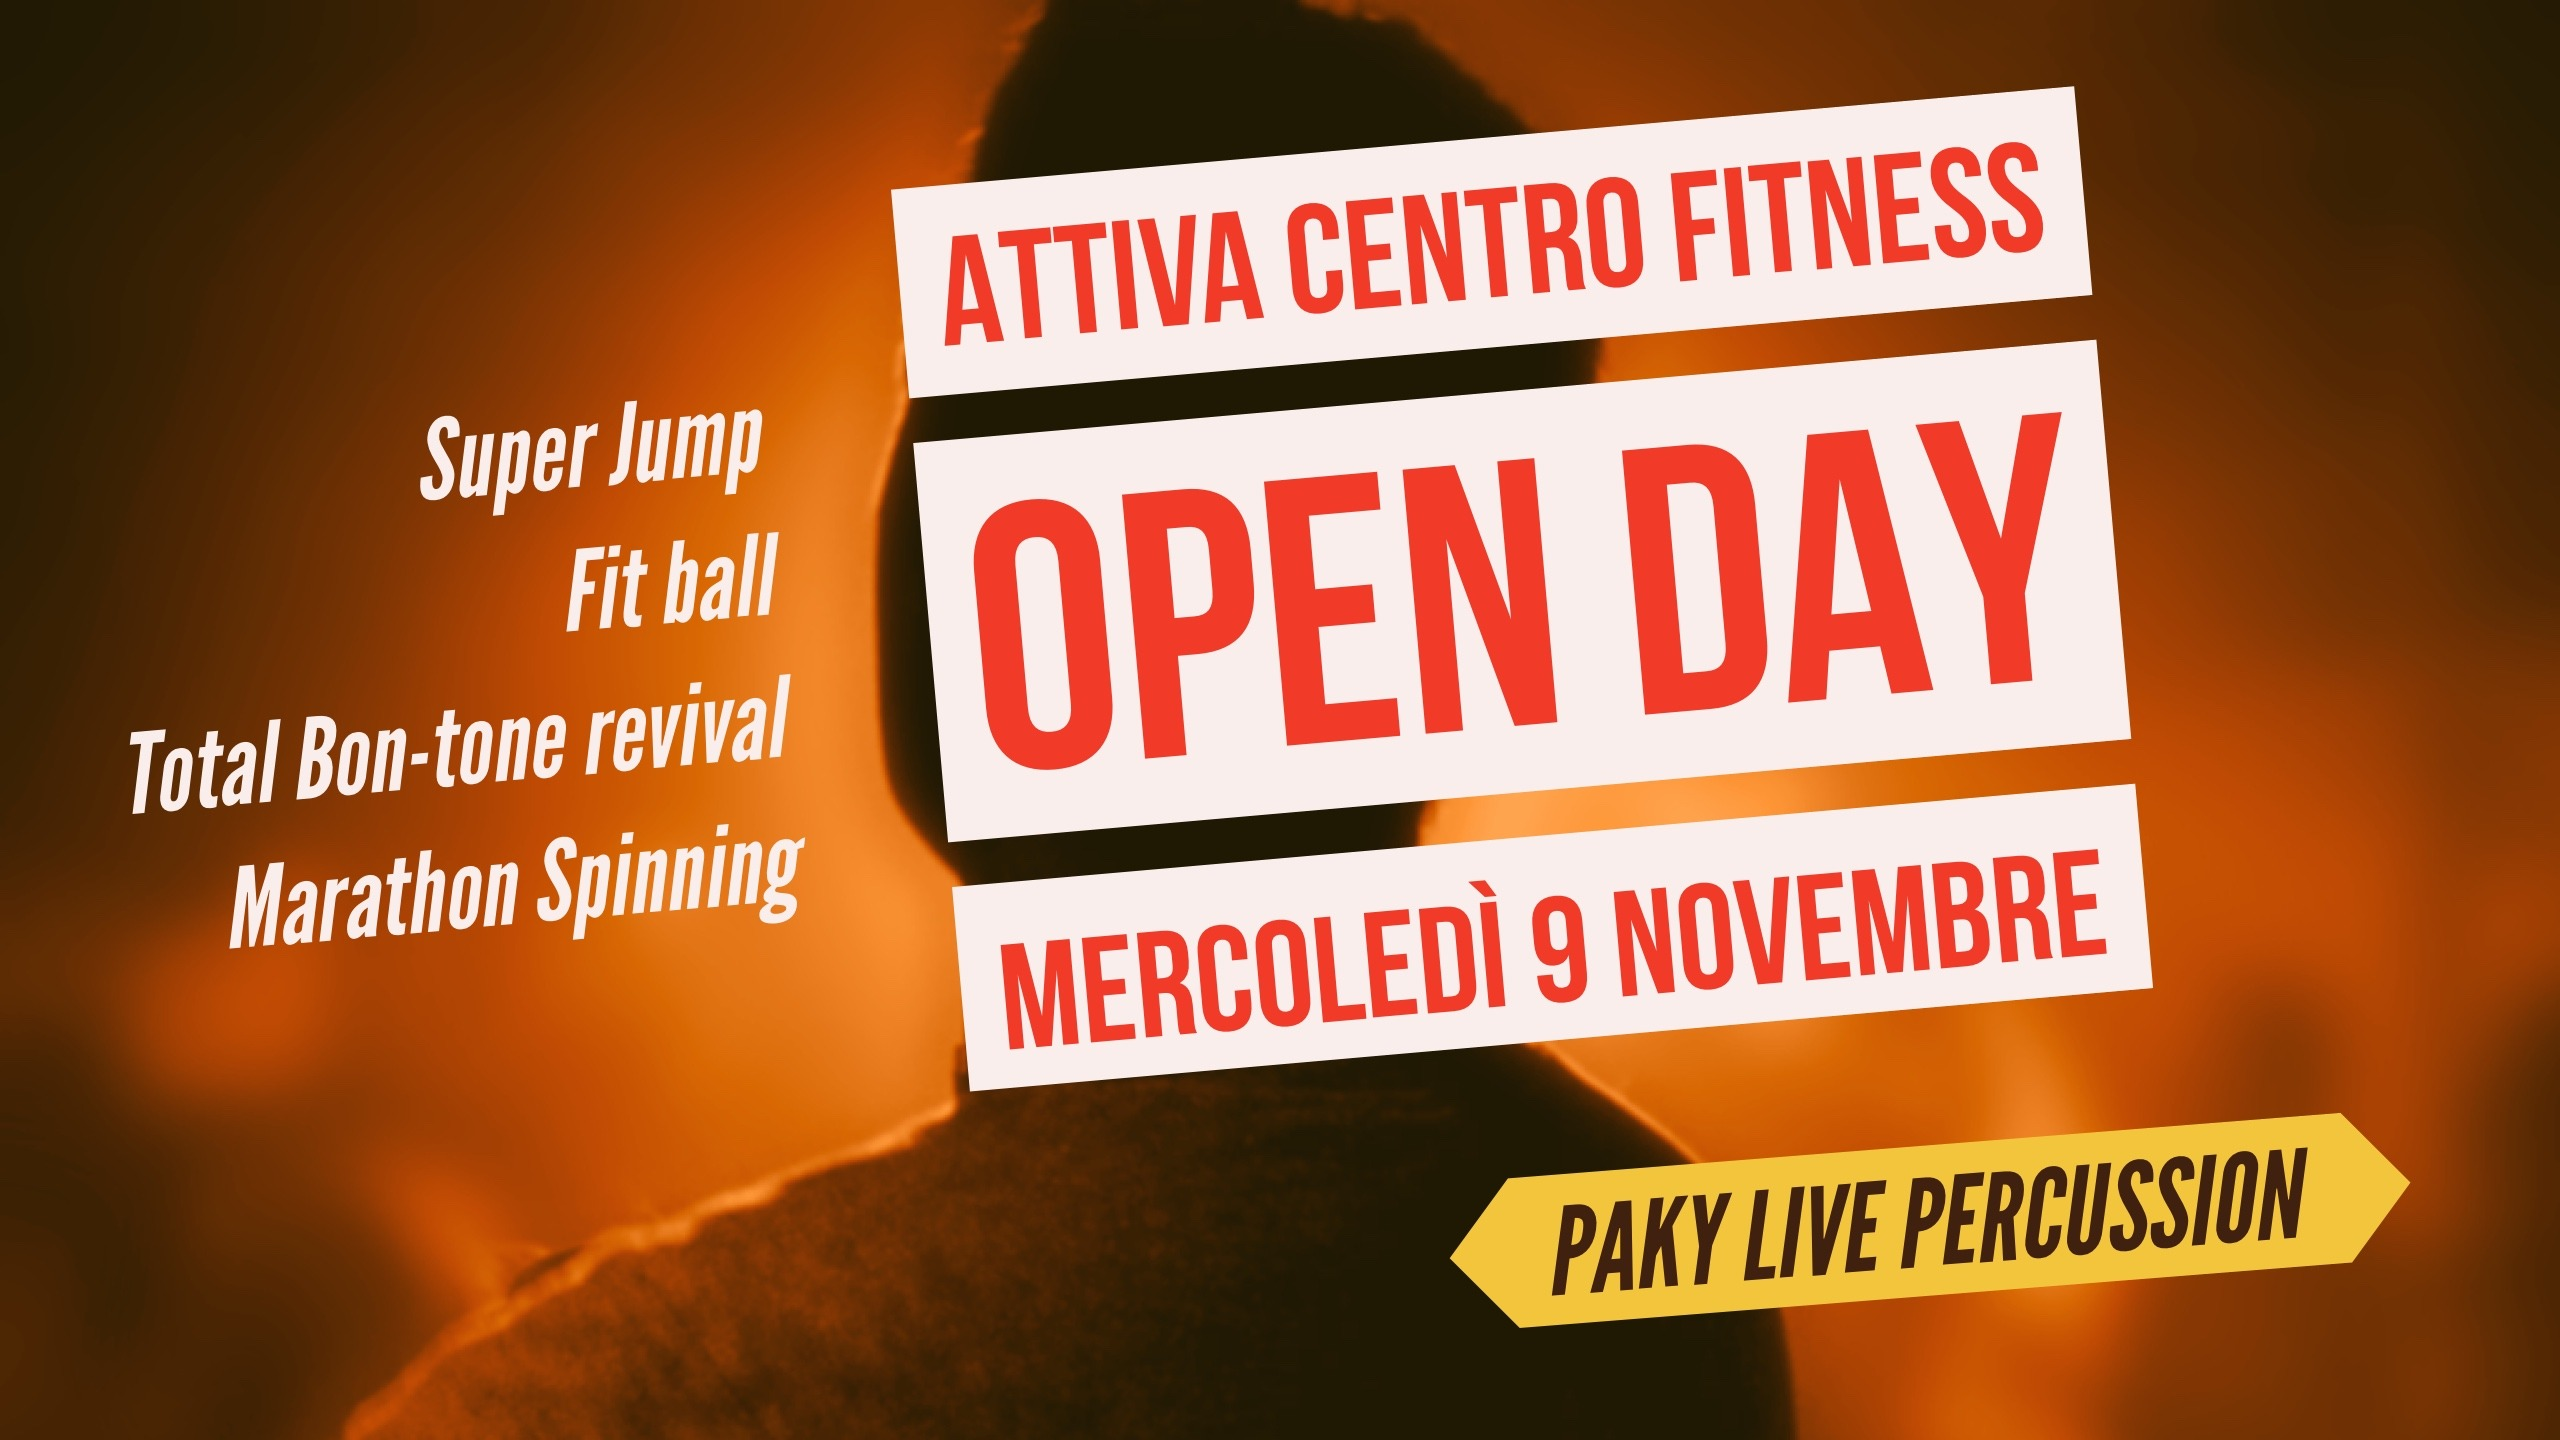 Attiva Centro Fitness open day